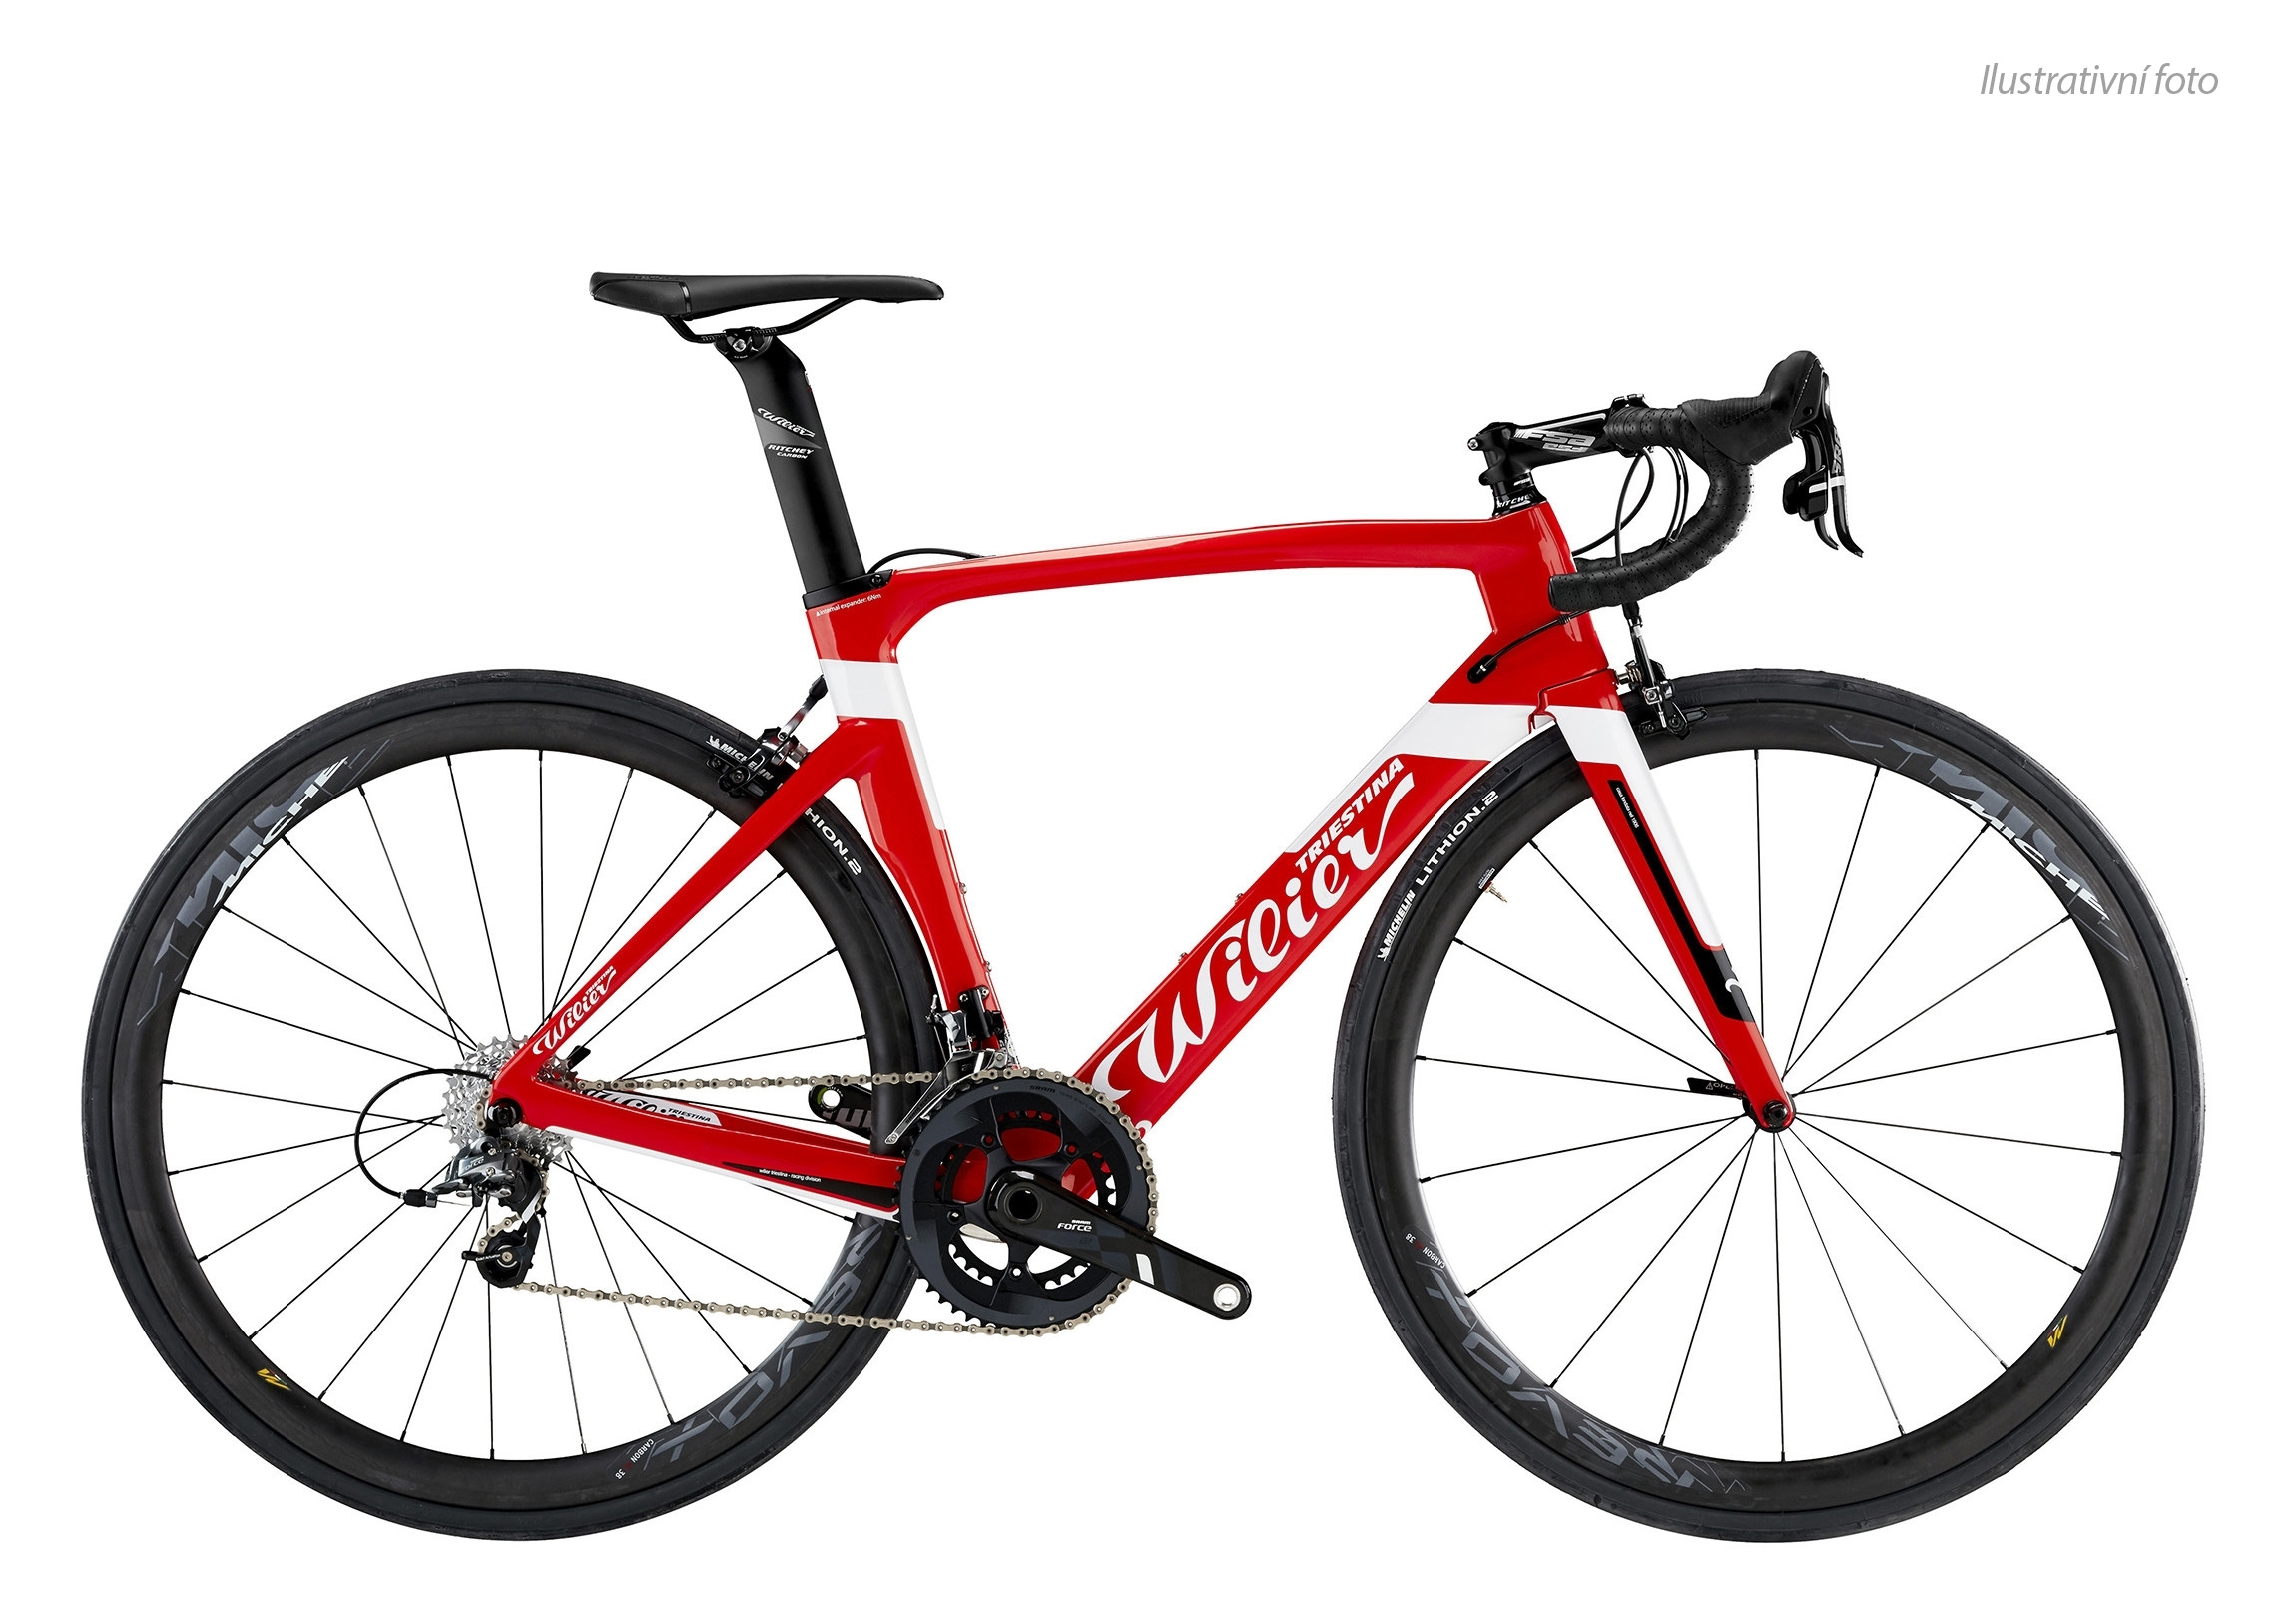 kolo CENTO1AIR 2018+POTENZA+KHAMSIN Red White L